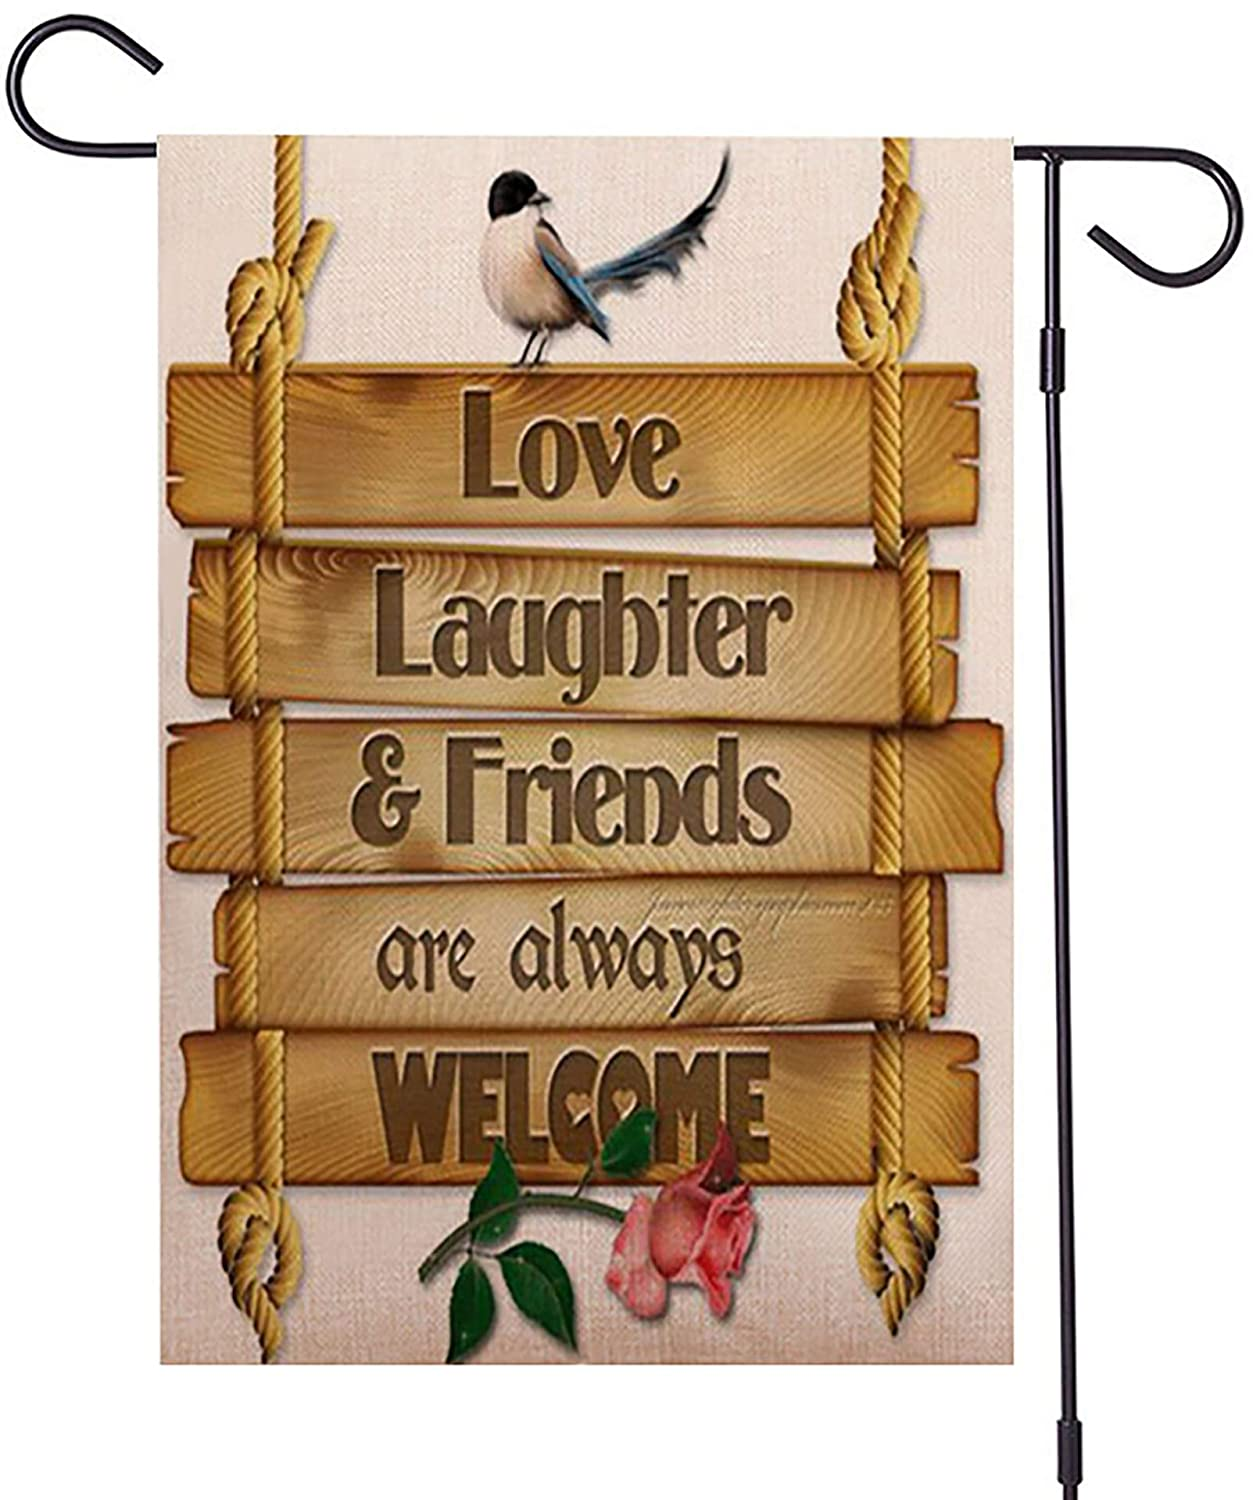 Guaikeai Bird Wooden Sign Welcome Garden Flag 12 x 18 Inch Double Sided Outside Decor for Home Yard Farmhouse